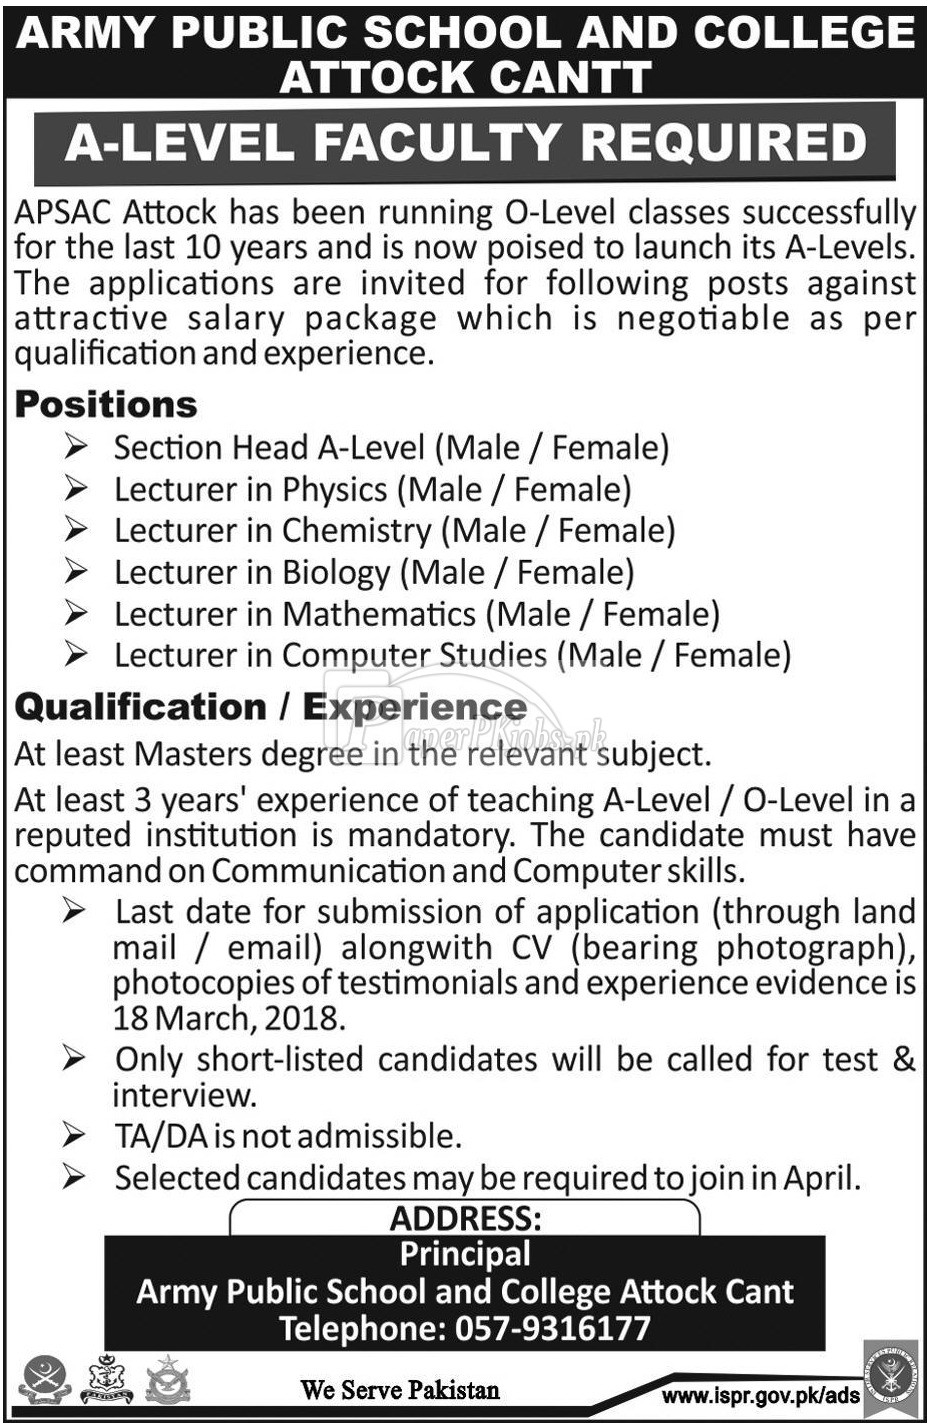 Army Public School and College Attock Cantt Jobs 2018